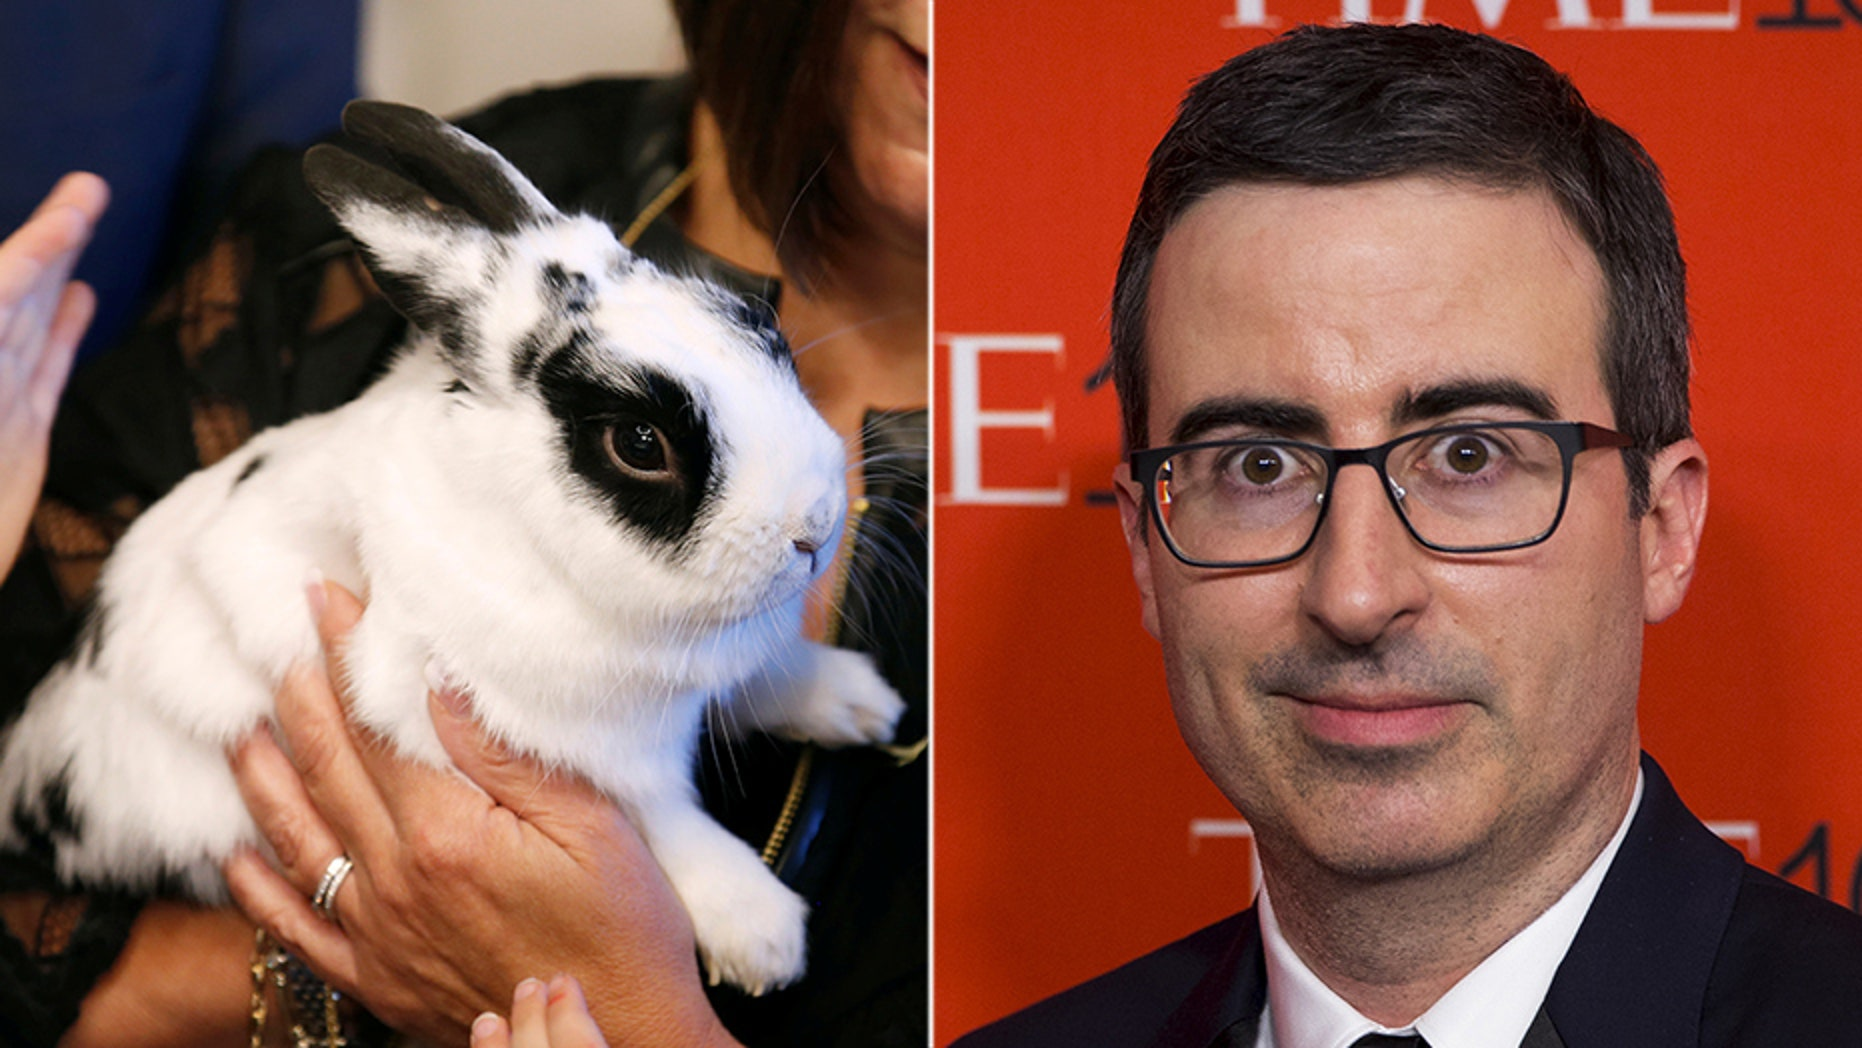 Comedian John Oliver faced backlash over a children's book that Vice President Mike Pence's daughter wrote -- about the family's rabbit.